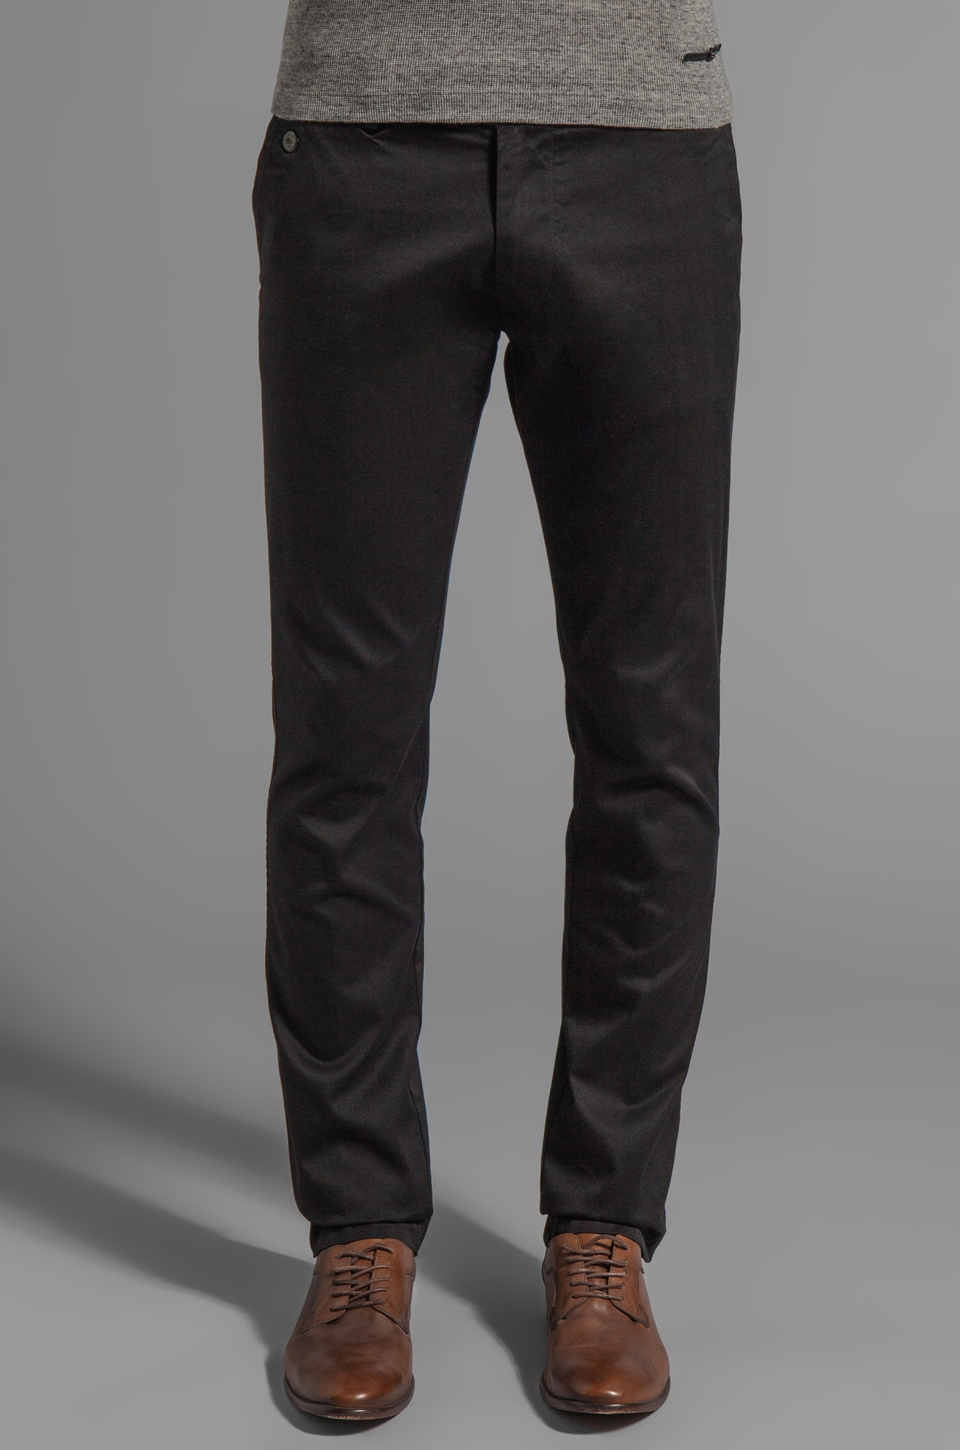 Diesel Chi-Tight Pants in Black Stripe